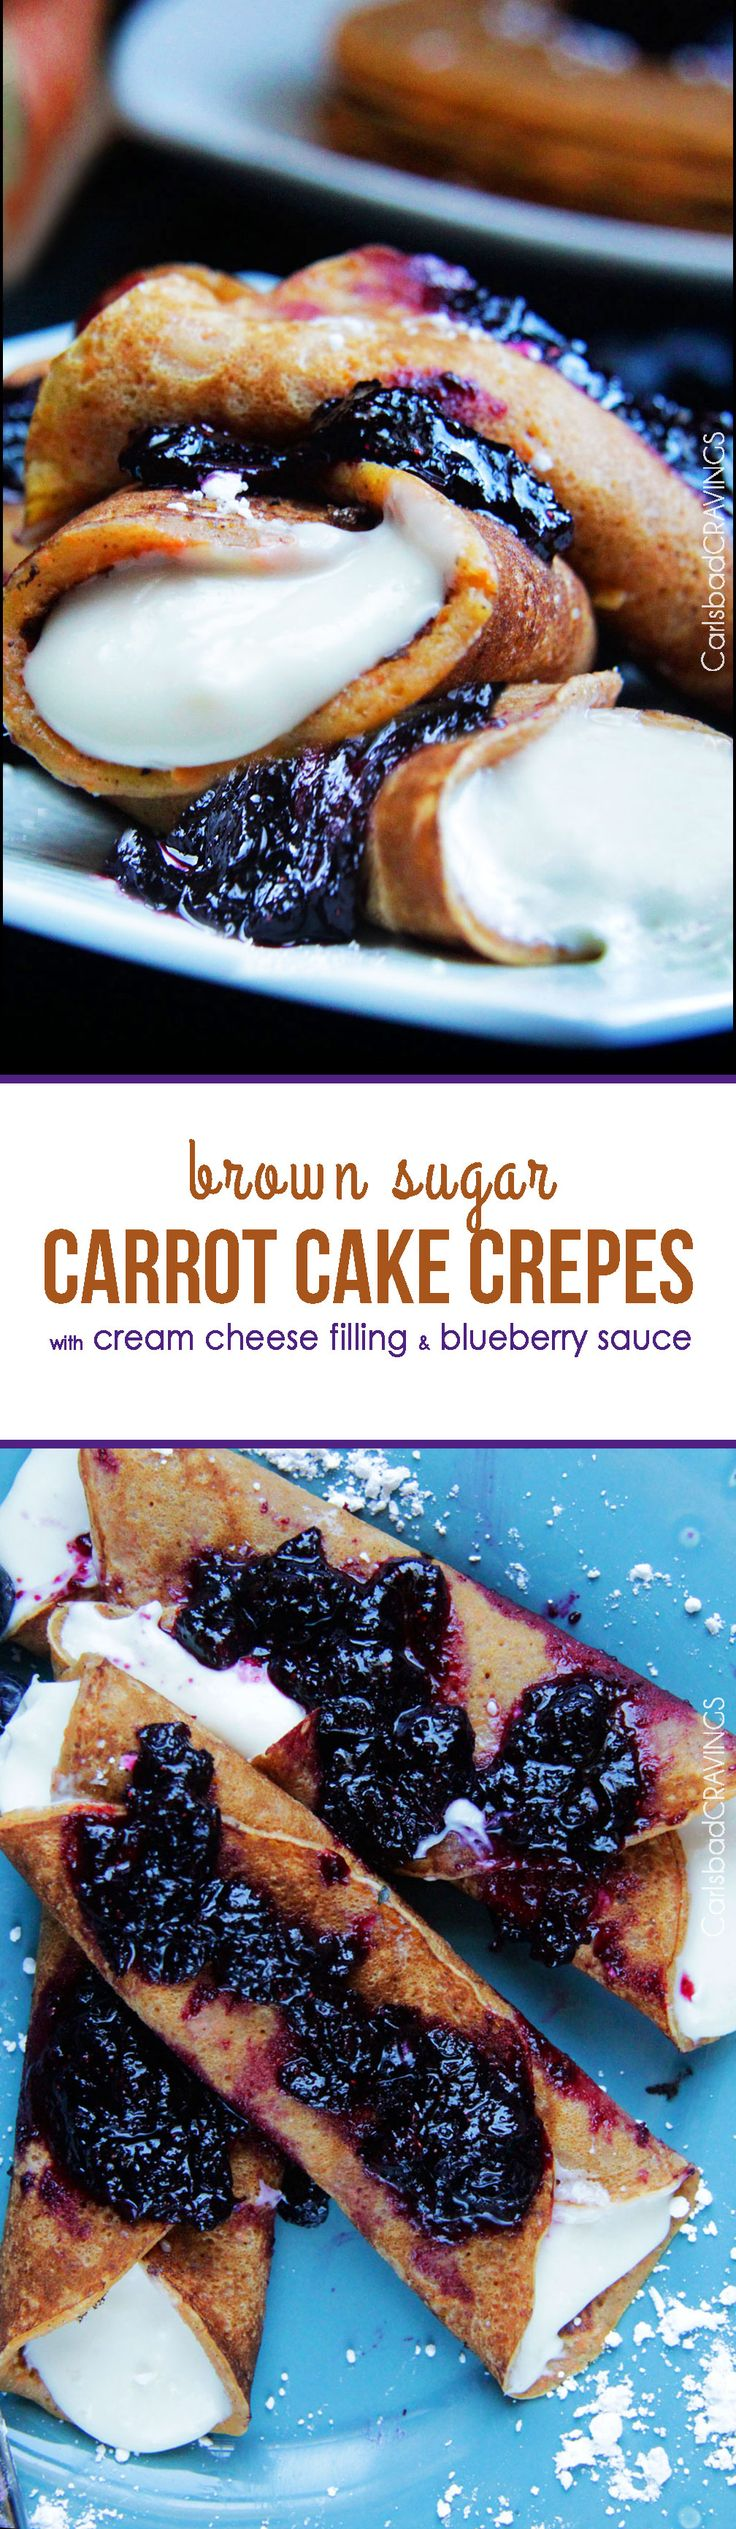 Brown Sugar Carrot Cake Crepes with Cream Cheese Filling and Blueberry Sauce - EVERY BIT AS DELICIOUS as they sound! Like thin sweet carrot cake smothered with whipped cream cheese and sweet blueberries. #crepes #blueberrycrepes #carrotcake #brunch